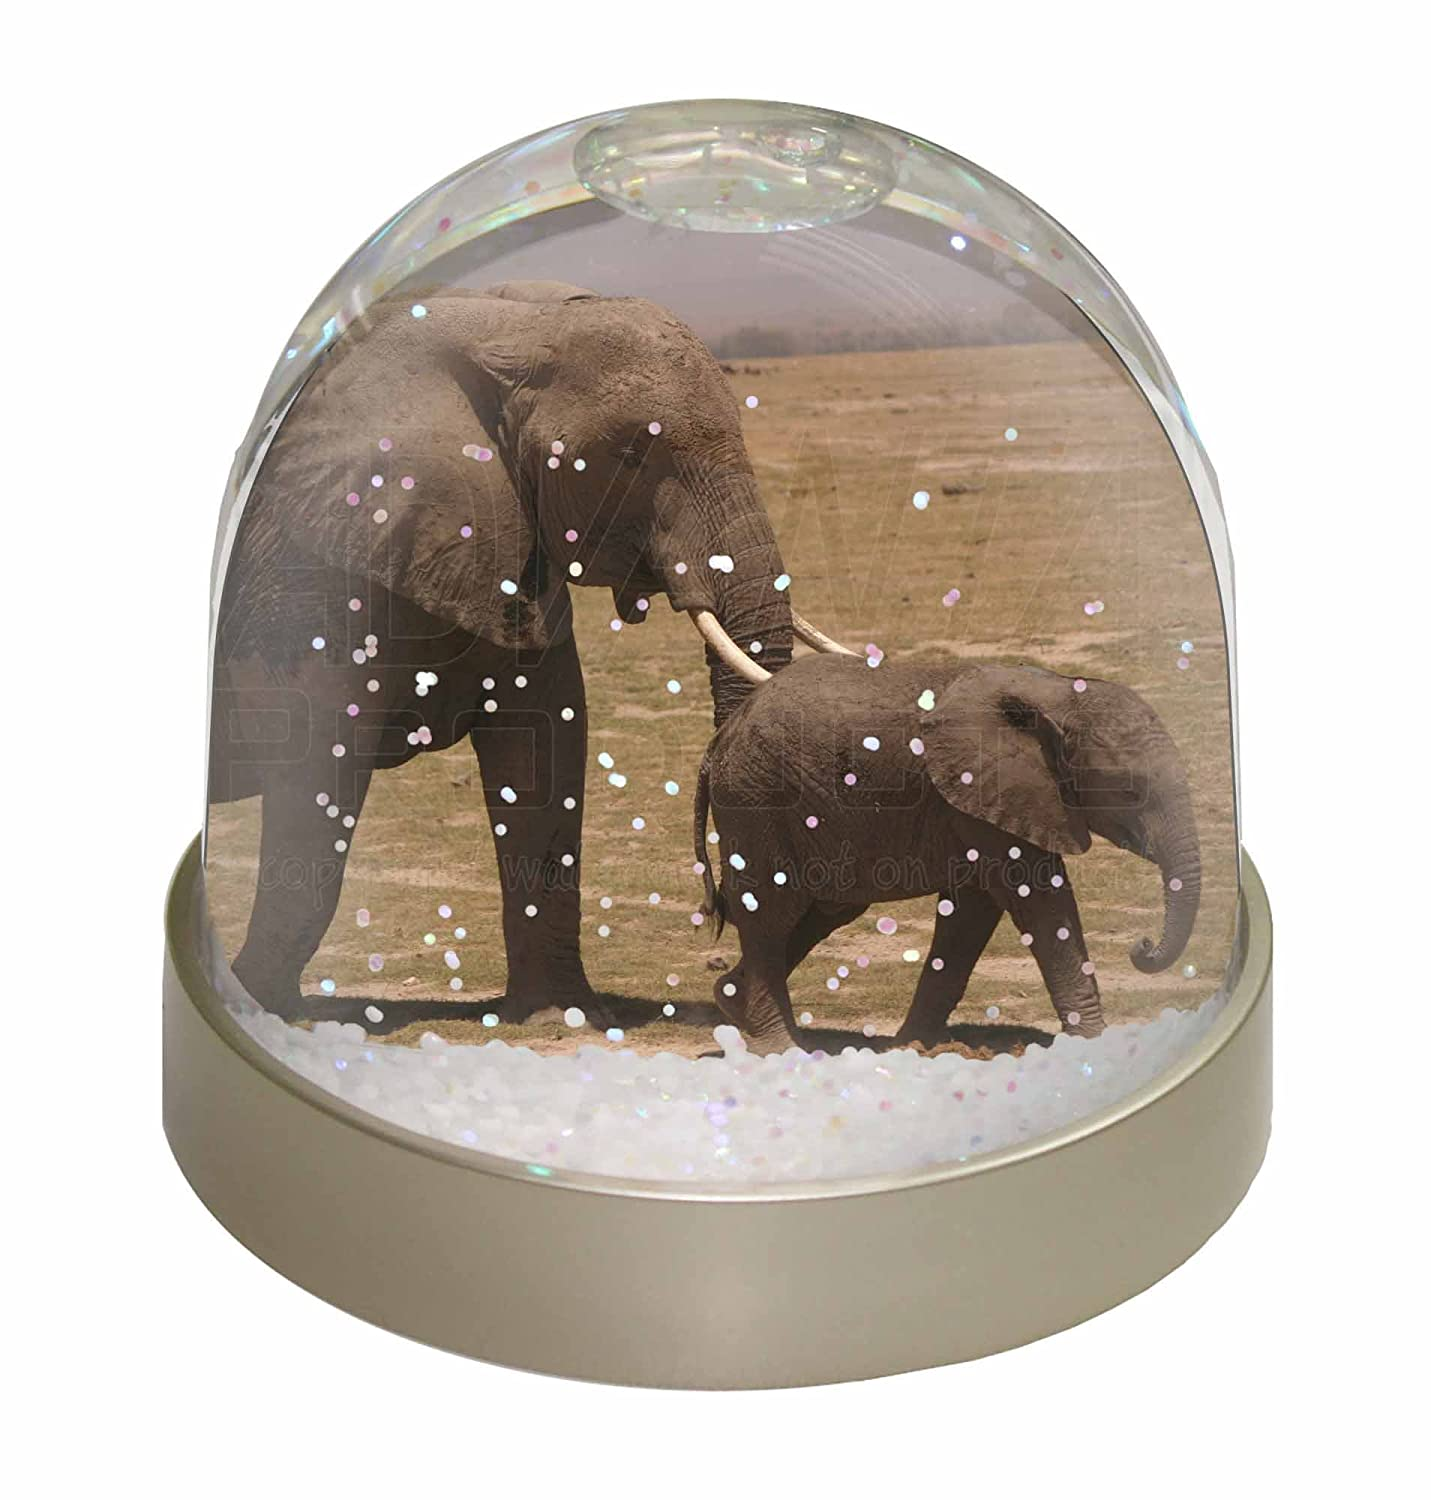 Advanta Elephant and Baby Tuskers Snow Waterball, Multi-Colour, 9.2 x 9.2 x 8 cm Advanta Products AE-6GL